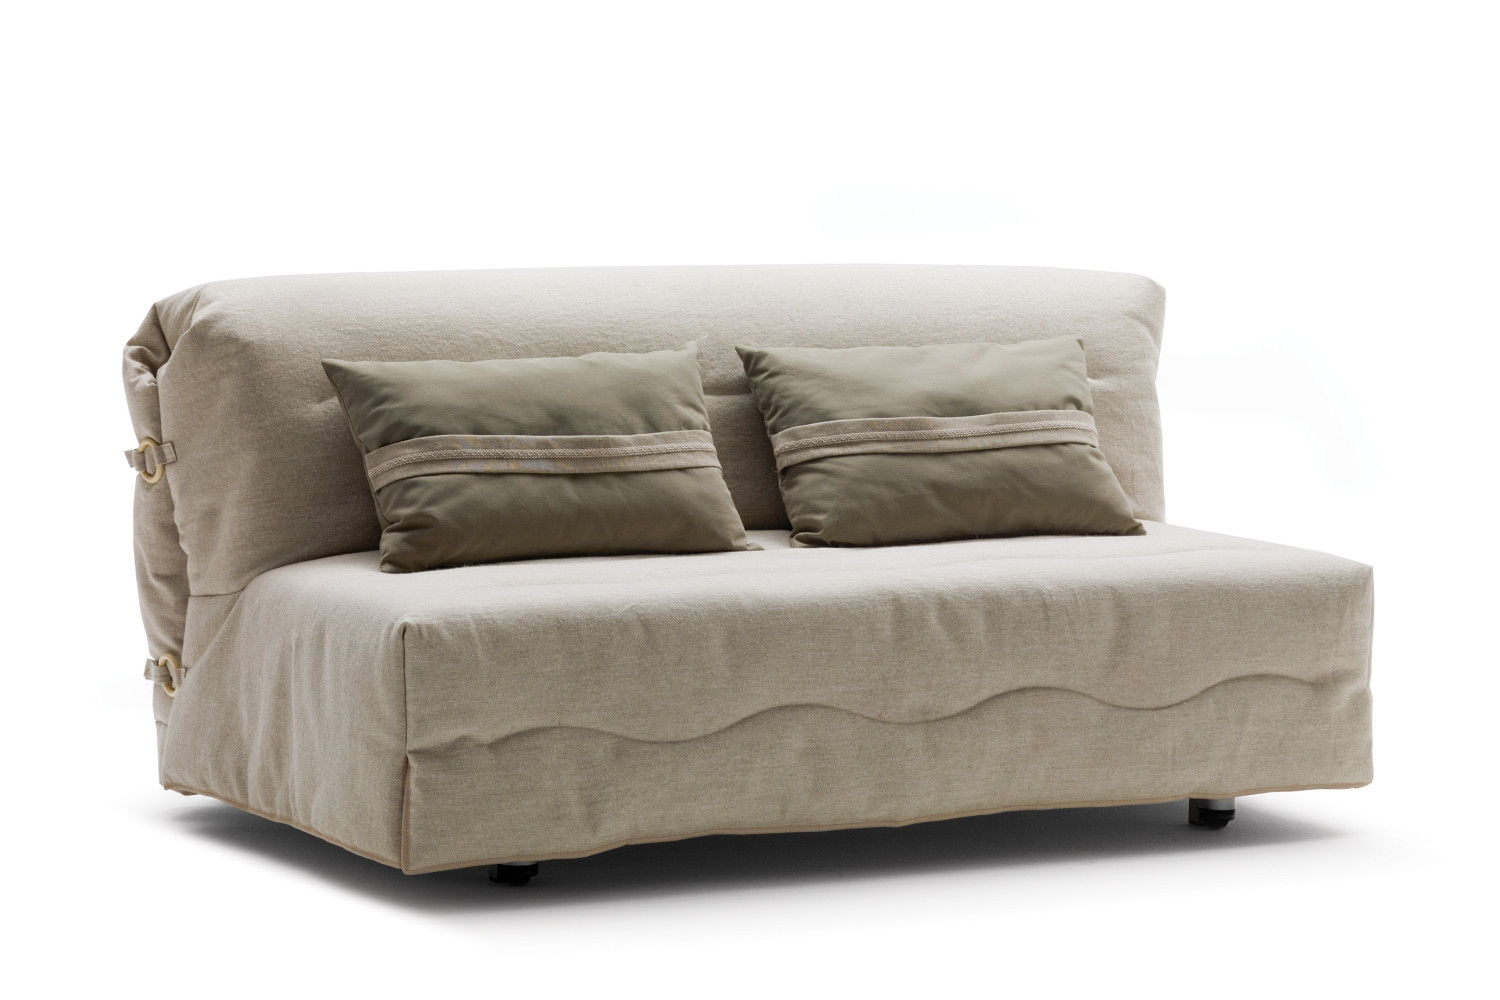 Roger folding sofa with quilt cover